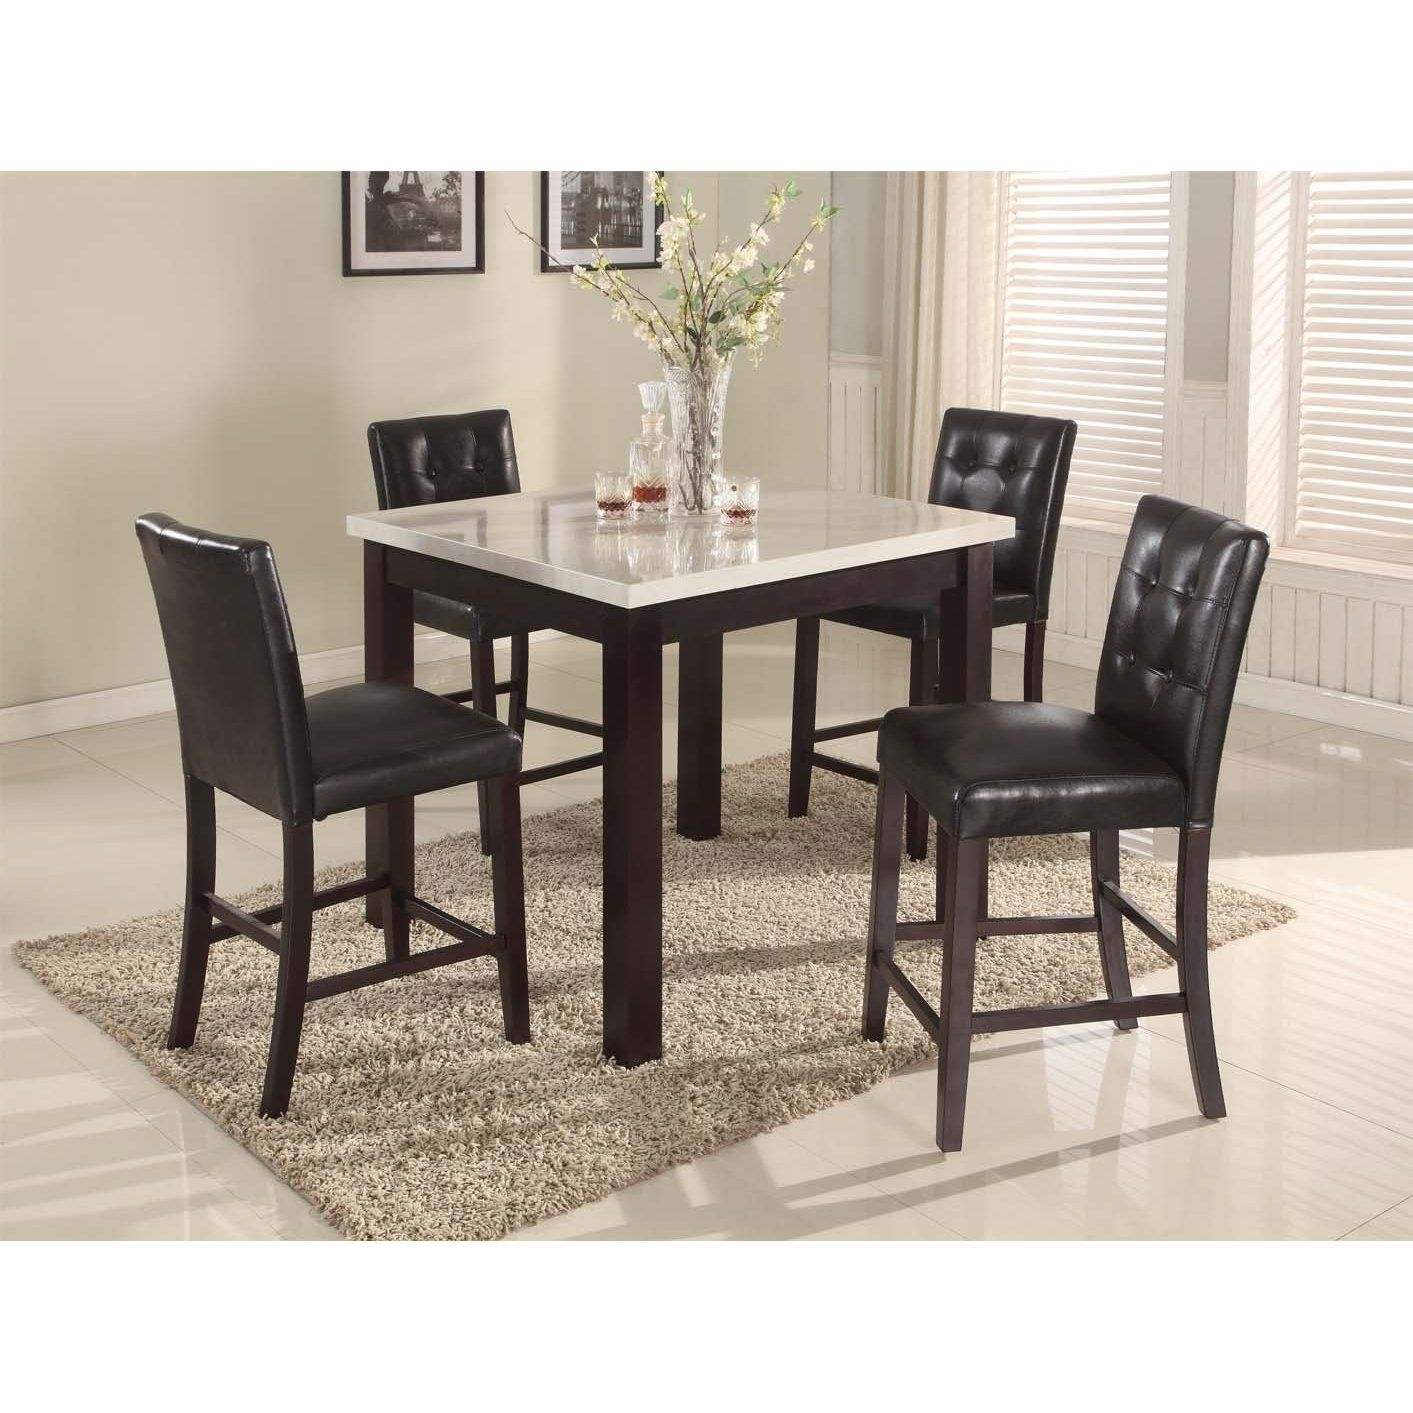 Roundhill Furniture 5 Piece Oern Artificial Marble Top Counter Height  Dinette Dinning Table Set With